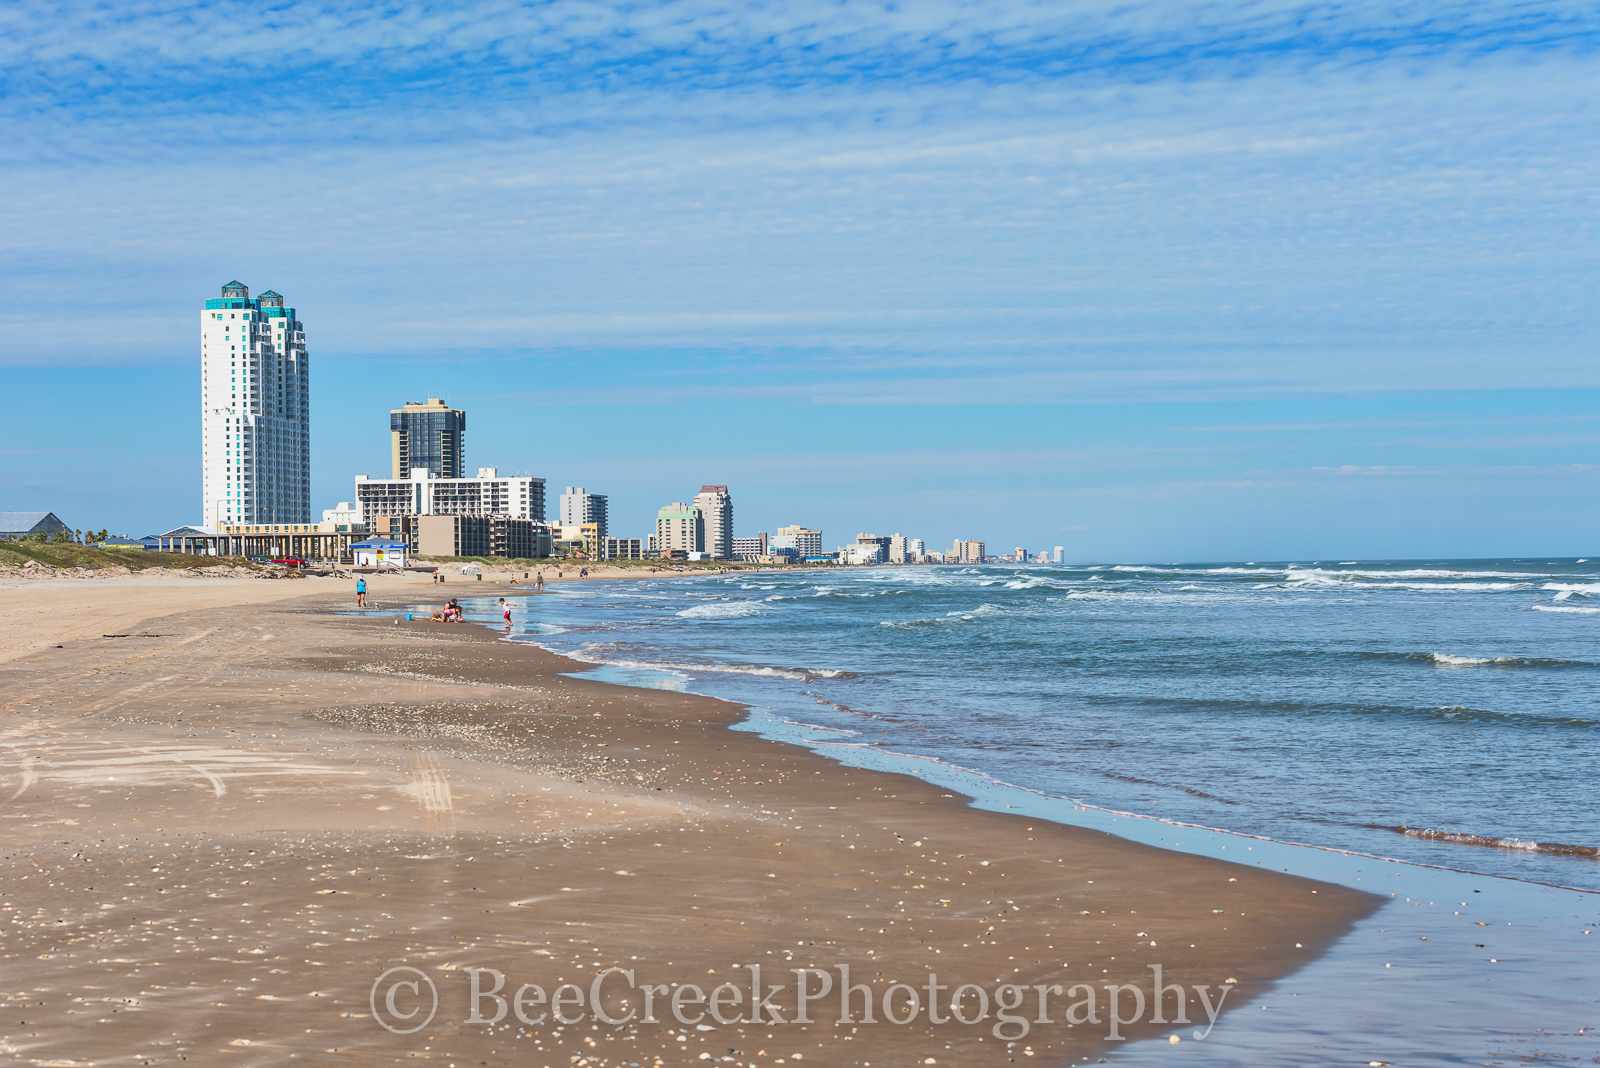 South Padre Island, Texas beach, beach, coastal, dunes, hotels, landscape, landscapes, ocean, sand, sand castles, sea shore, summer fun, surf, swimming, texas, water, wind surfing, gulf cost images, T, photo